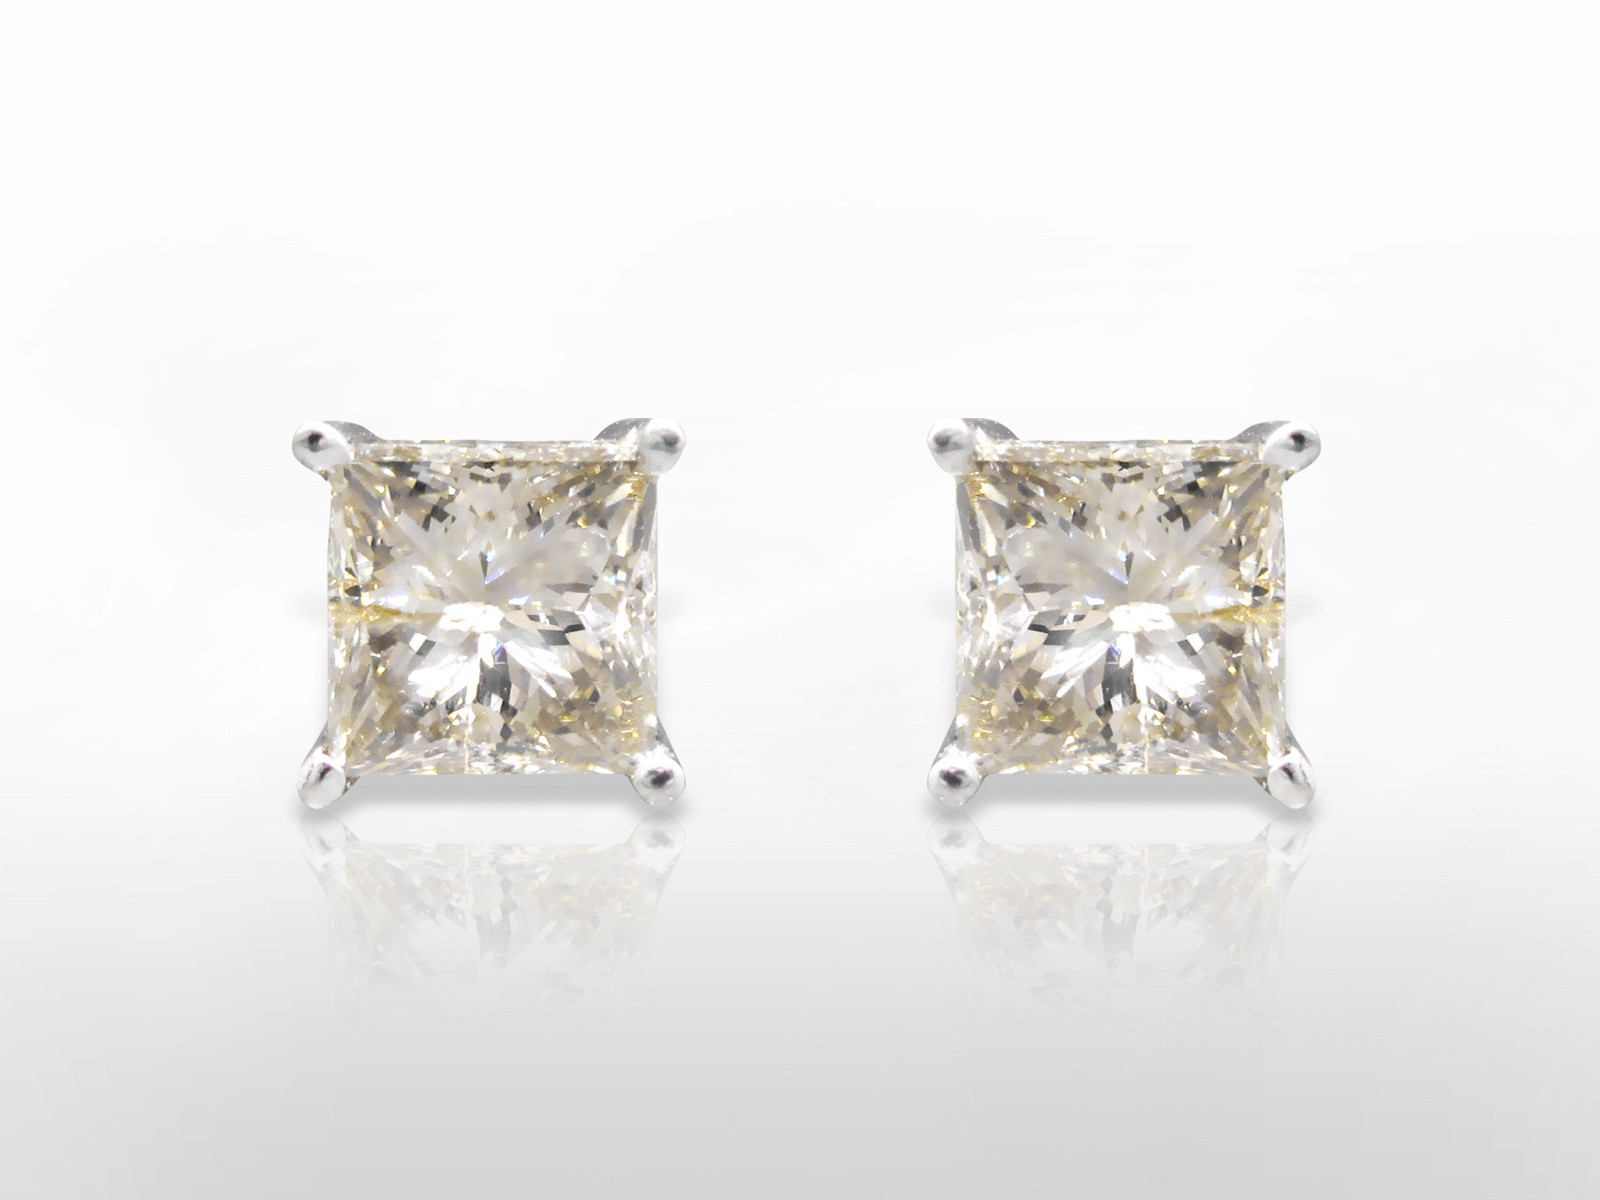 Toronto Sunday 03 26 2018 A 2ct Matching Pair Of Princess Cut Diamonds Earrings Come To Federal Auction S Live Fine Jewellery Swiss Watch